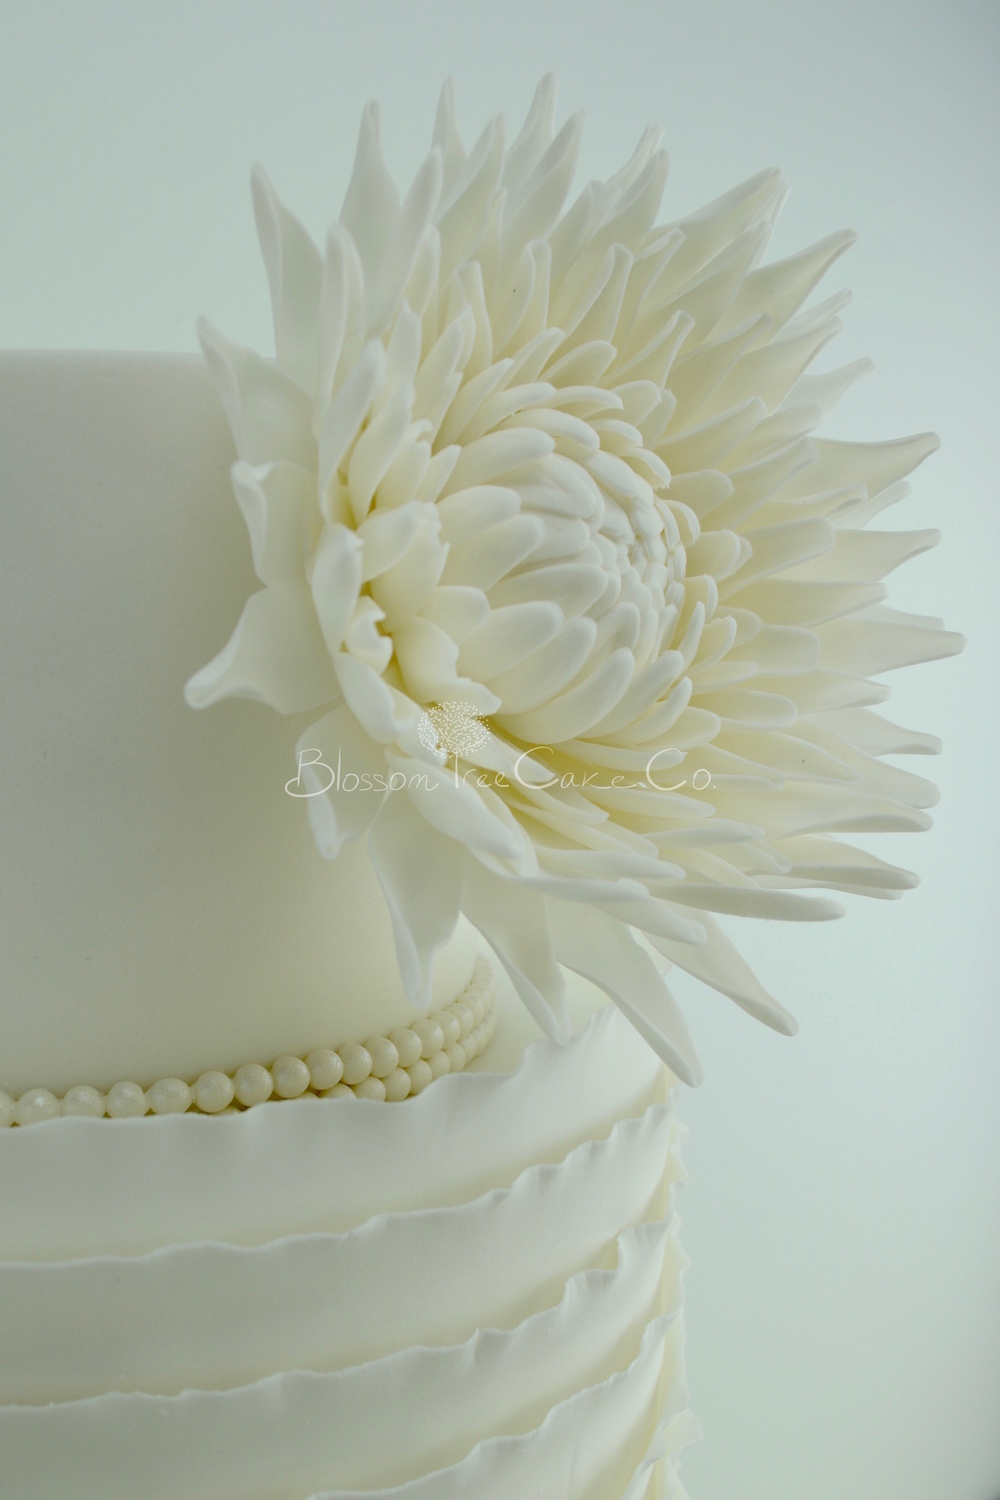 White Ruffle with White Dahlia wedding cake by Blossom Tree Cake Co Harrogate North Yorkshire detail 1.jpg